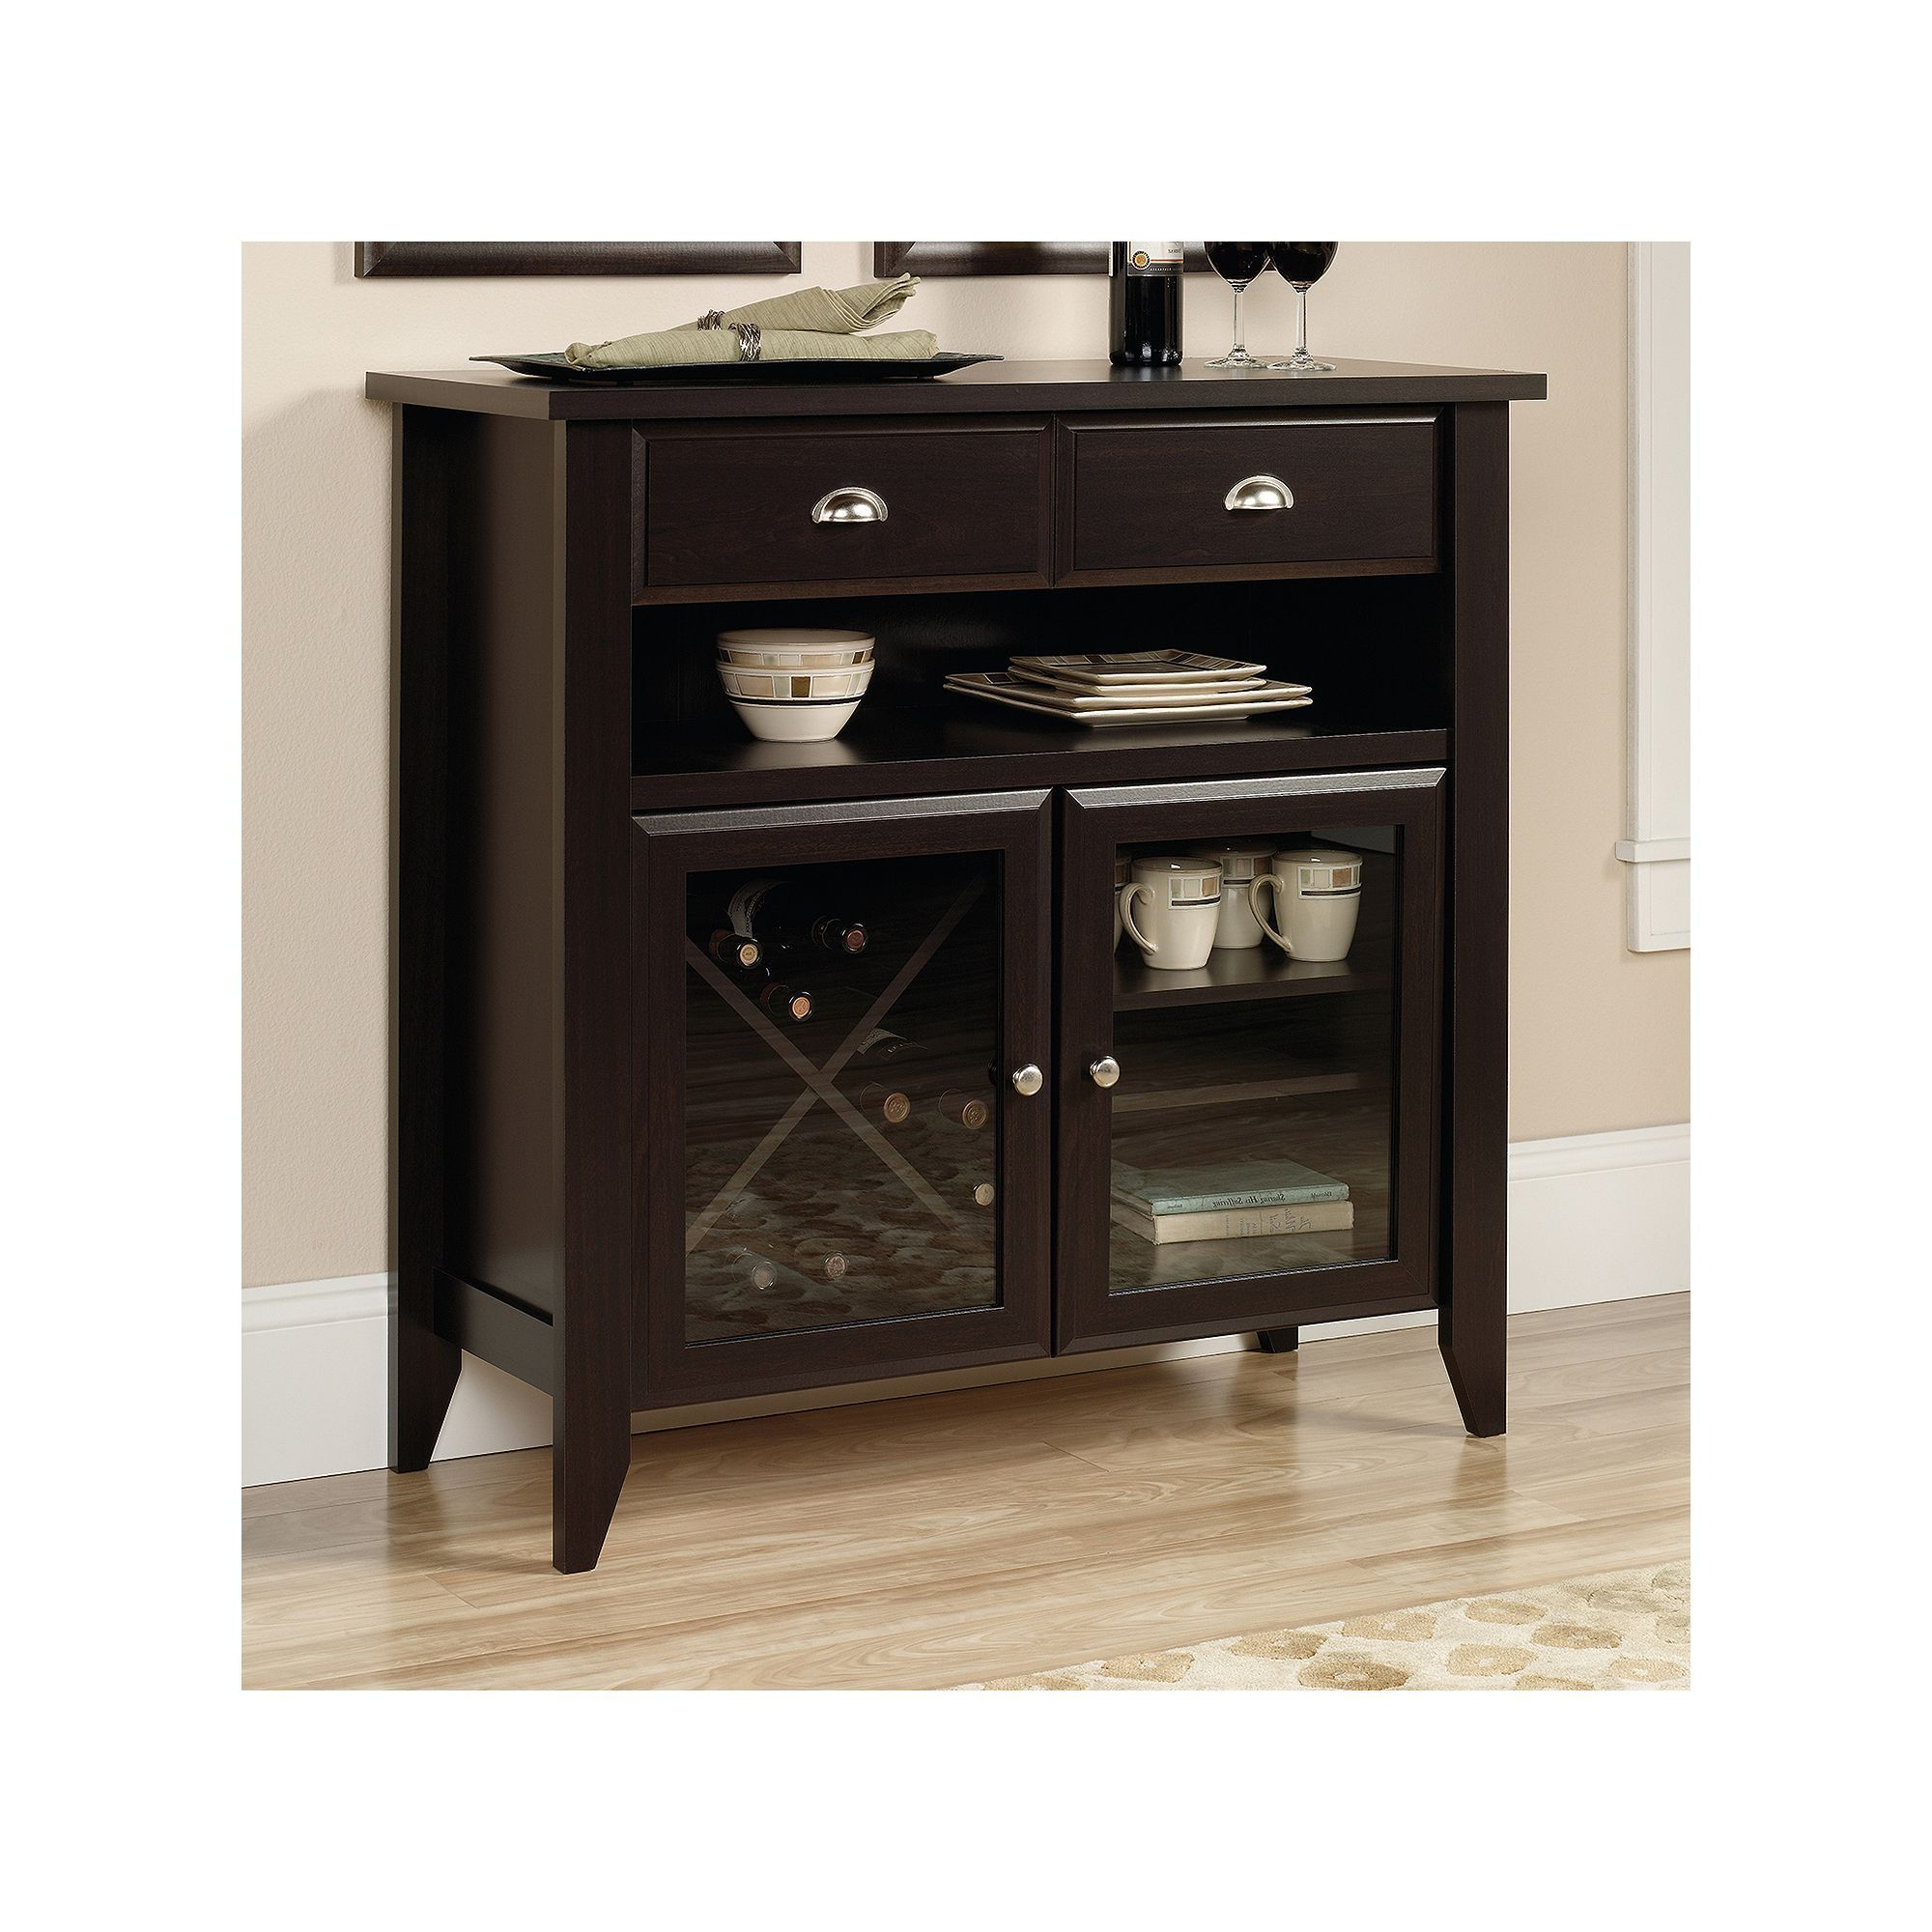 Kattie 4 Door Cabinets In Well Known One Cabinet White Wonderful Furniture Wayfair Ashley Accent (View 10 of 20)